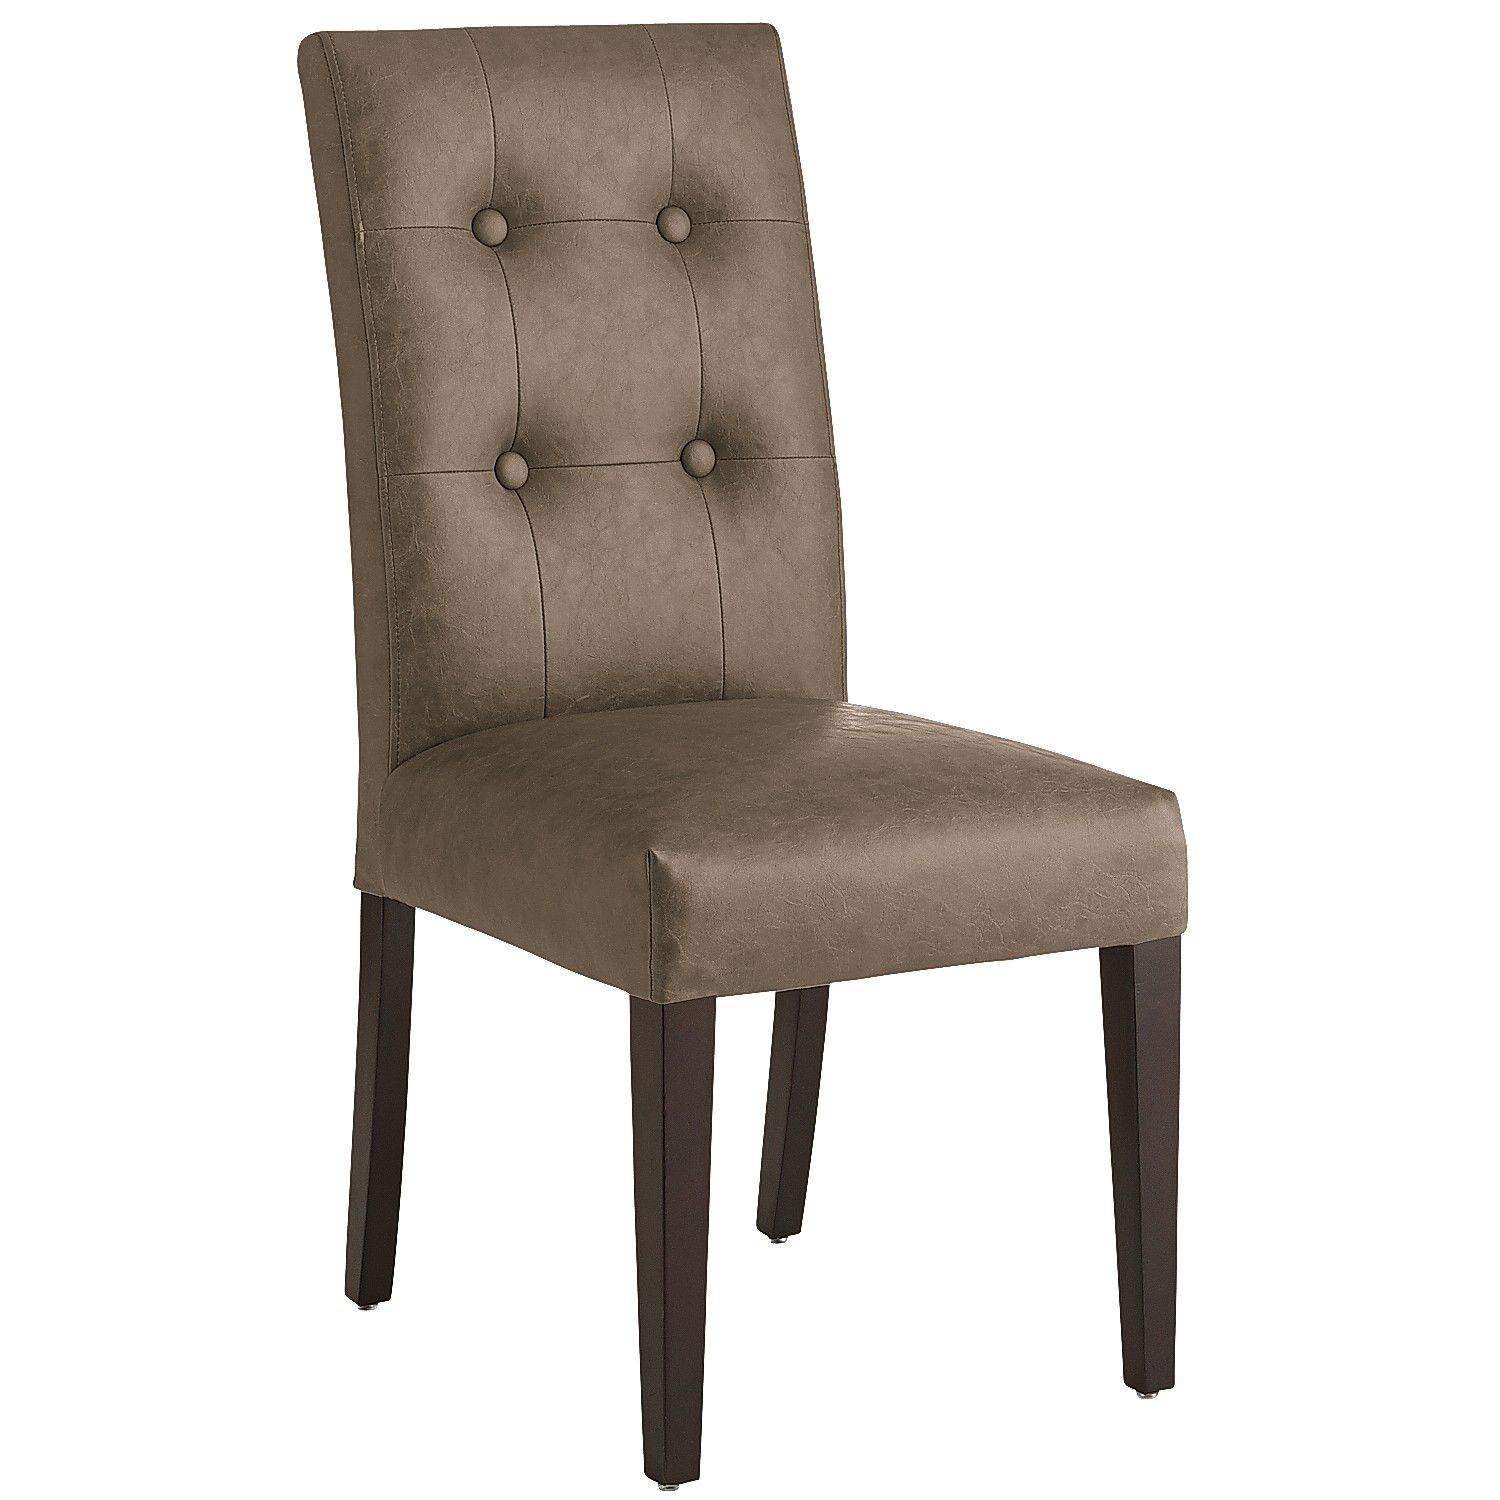 Discount Dining Room Chairs | Tufted Parsons Dining Chair | Tufted Dining Chair